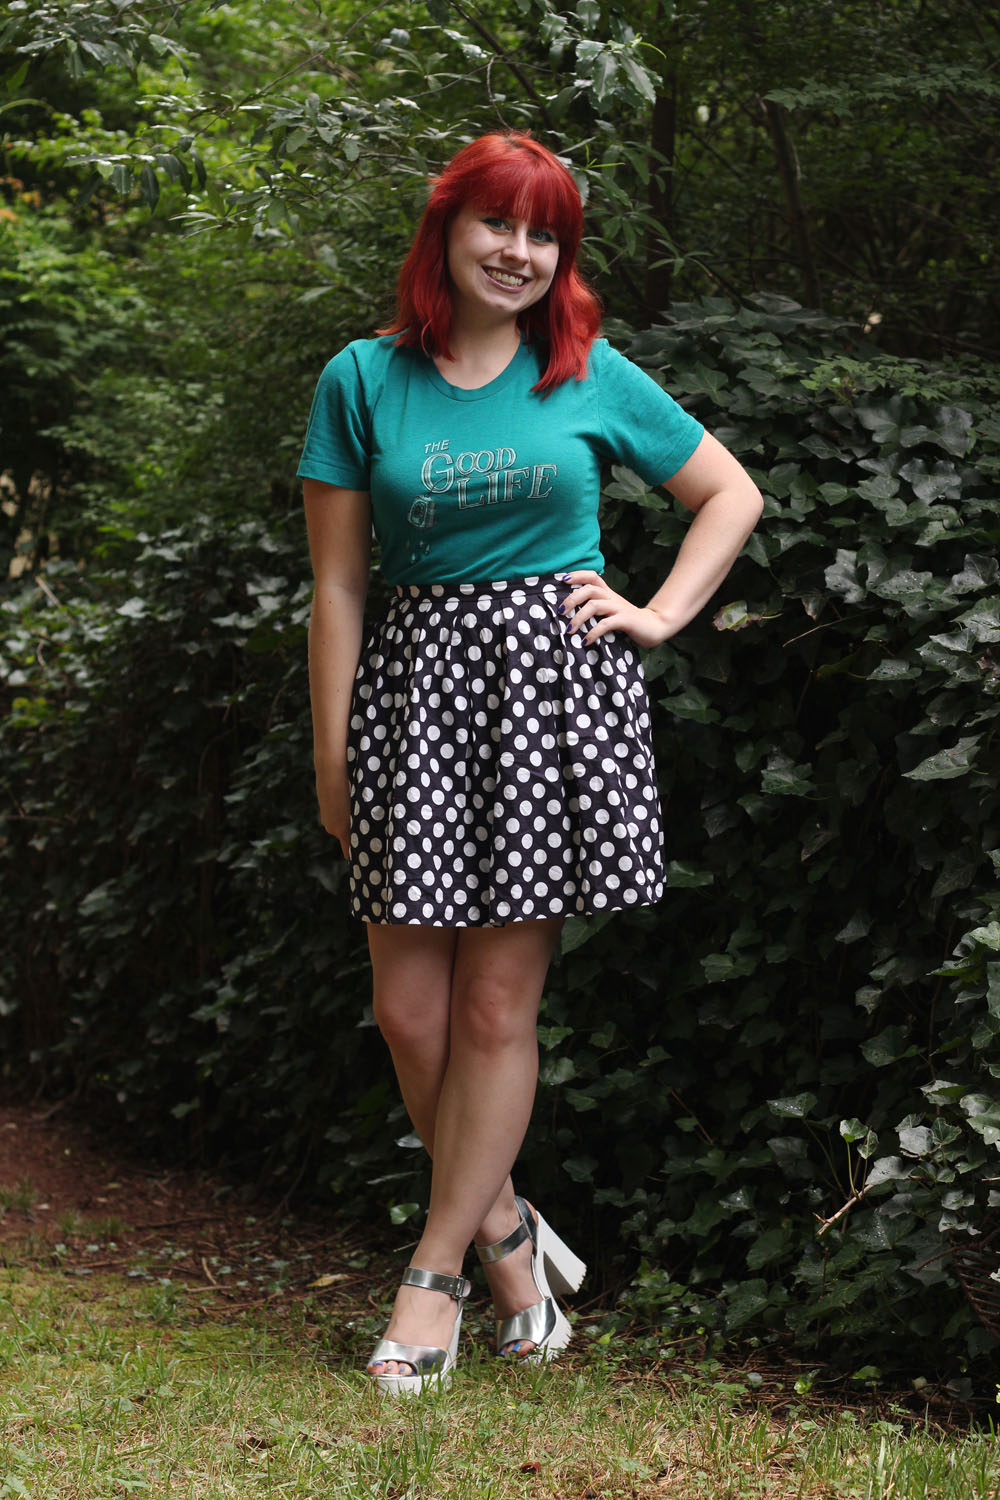 Concert Graphic Tee Pleated Blue Polka Dot Skirt Silver Peeptoe Platforms